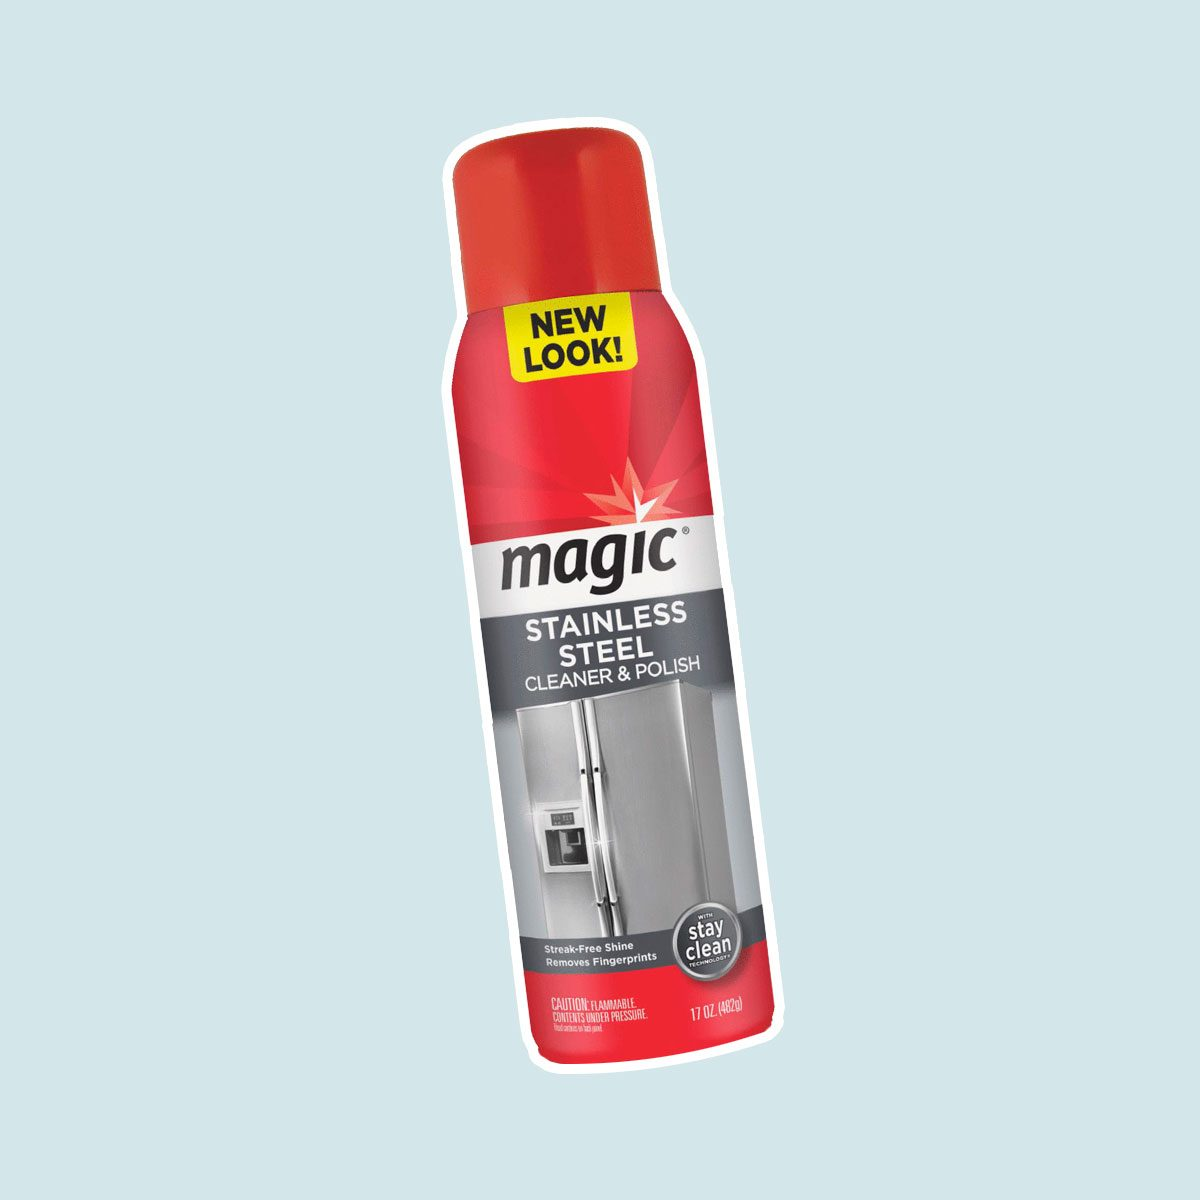 Magic Stainless Steel Cleaner & Polish